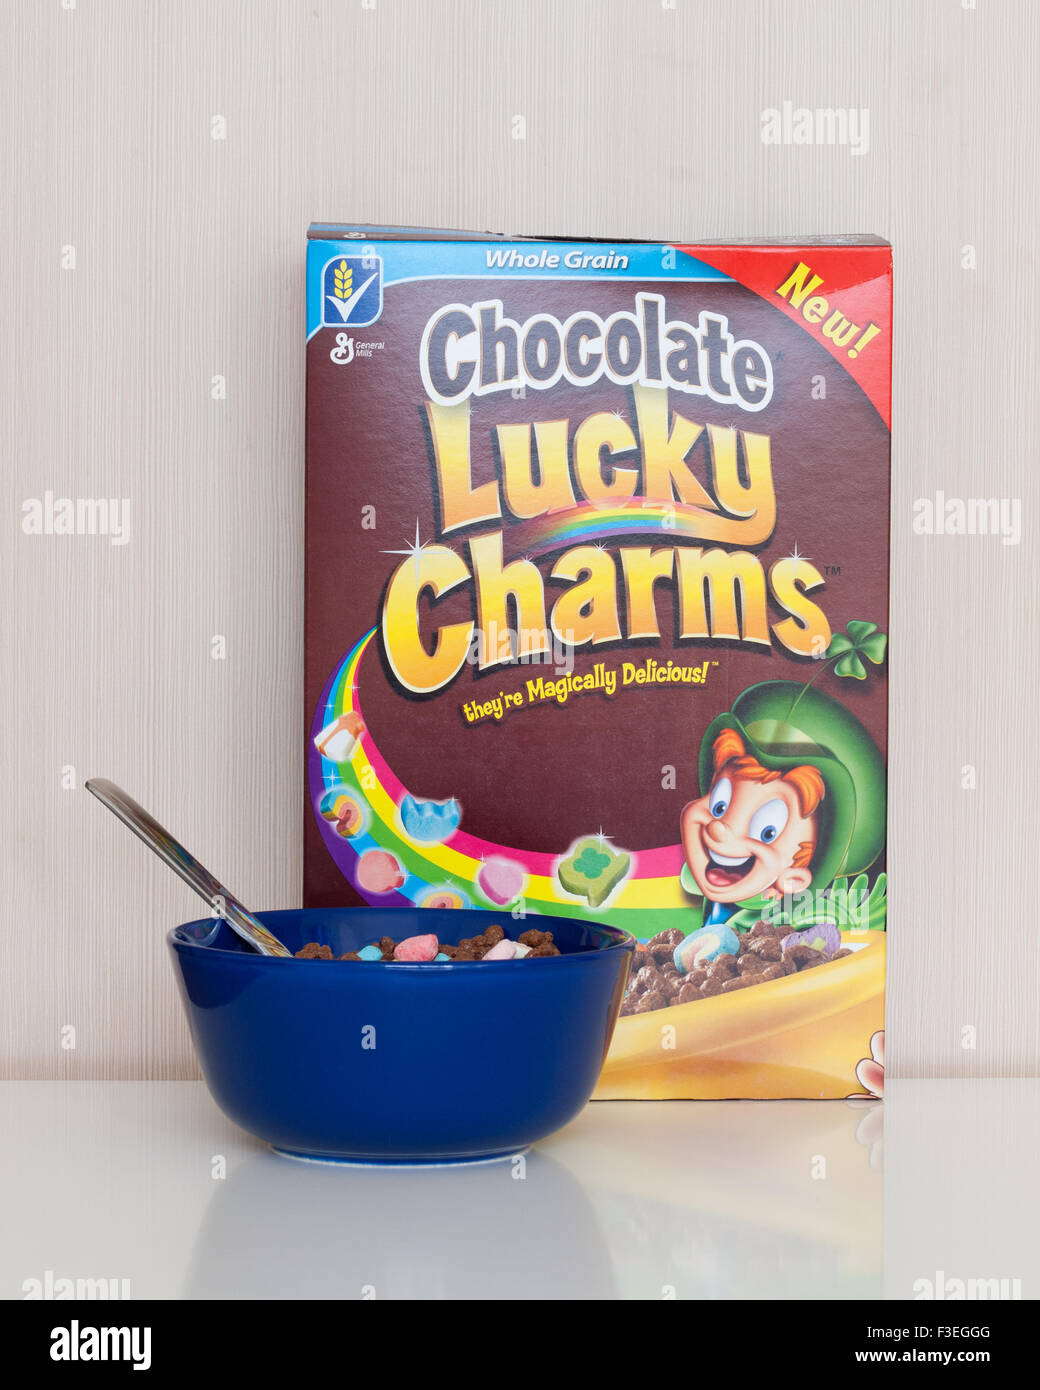 A box and bowl of Chocolate Lucky Charms cereal, manufactured by General Mills. - Stock Image